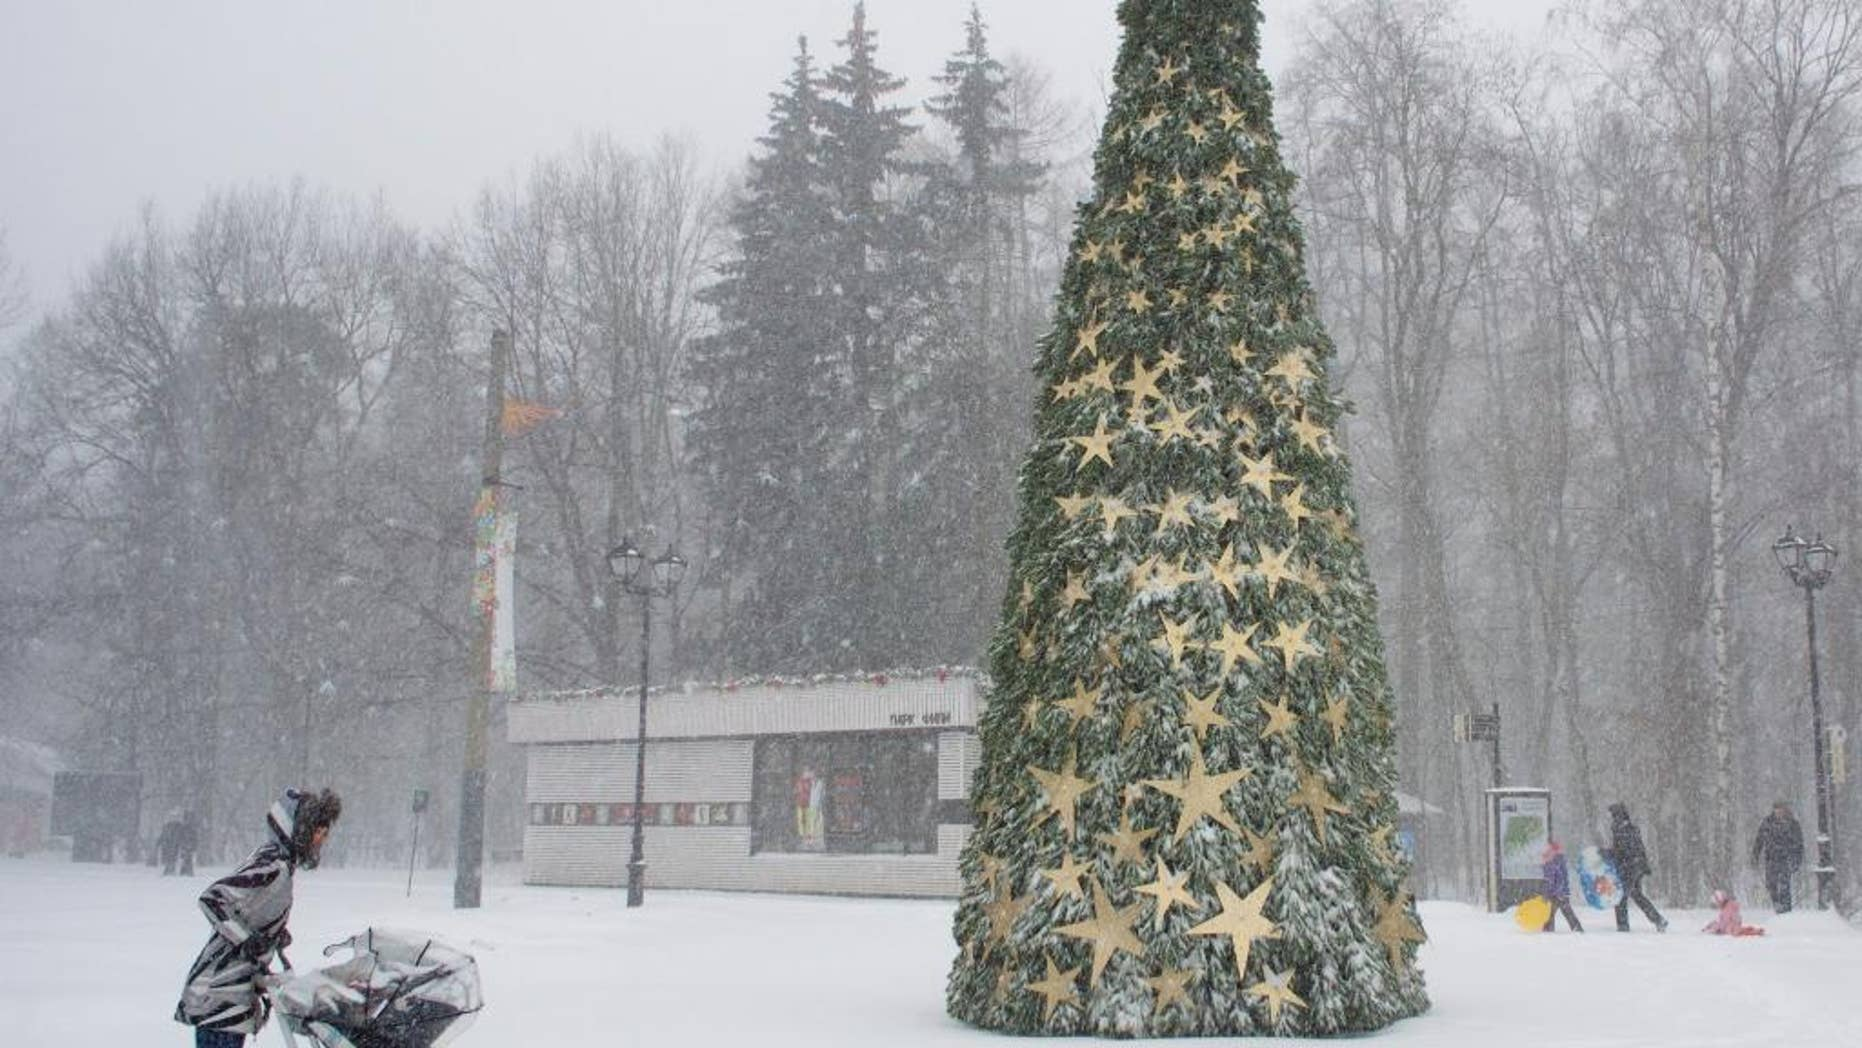 A woman walks with her child through heavy snowfall at a park in Moscow, Russia, Thursday, Dec. 25, 2014. (AP Photo/Ivan Sekretarev)